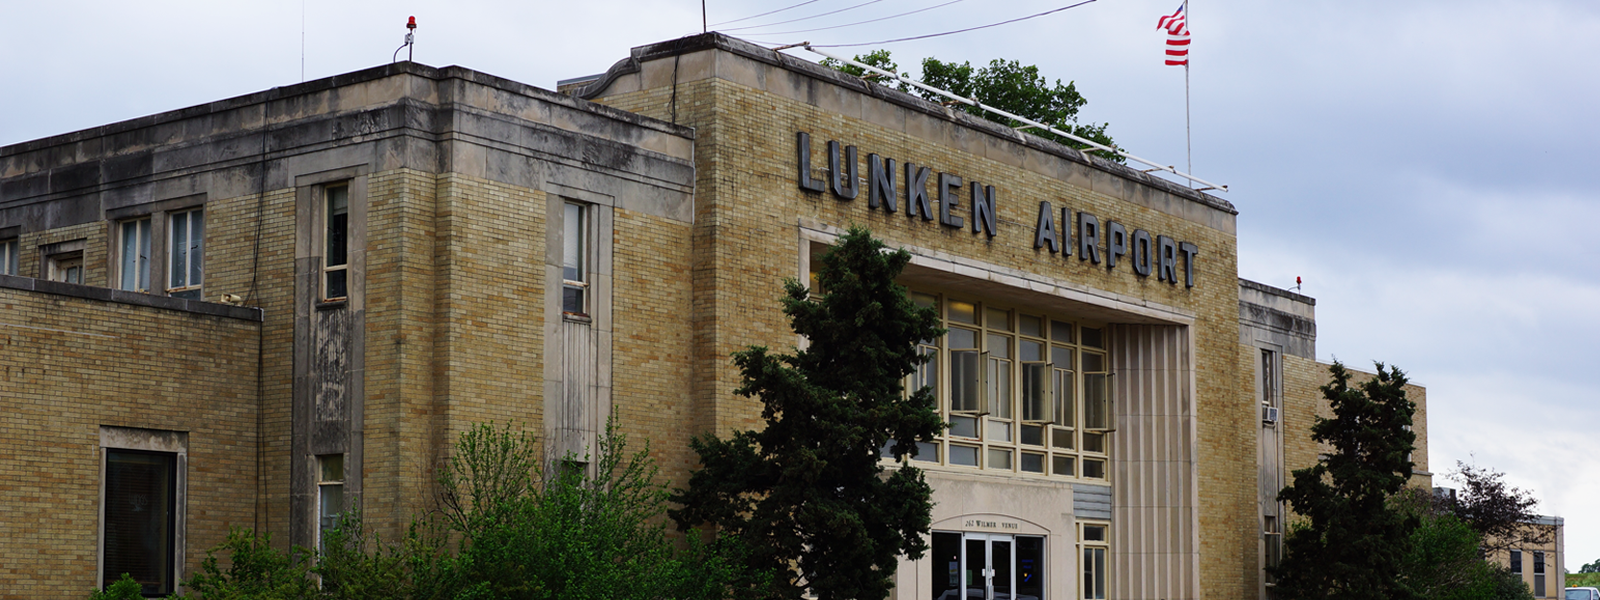 Lunkin Airport